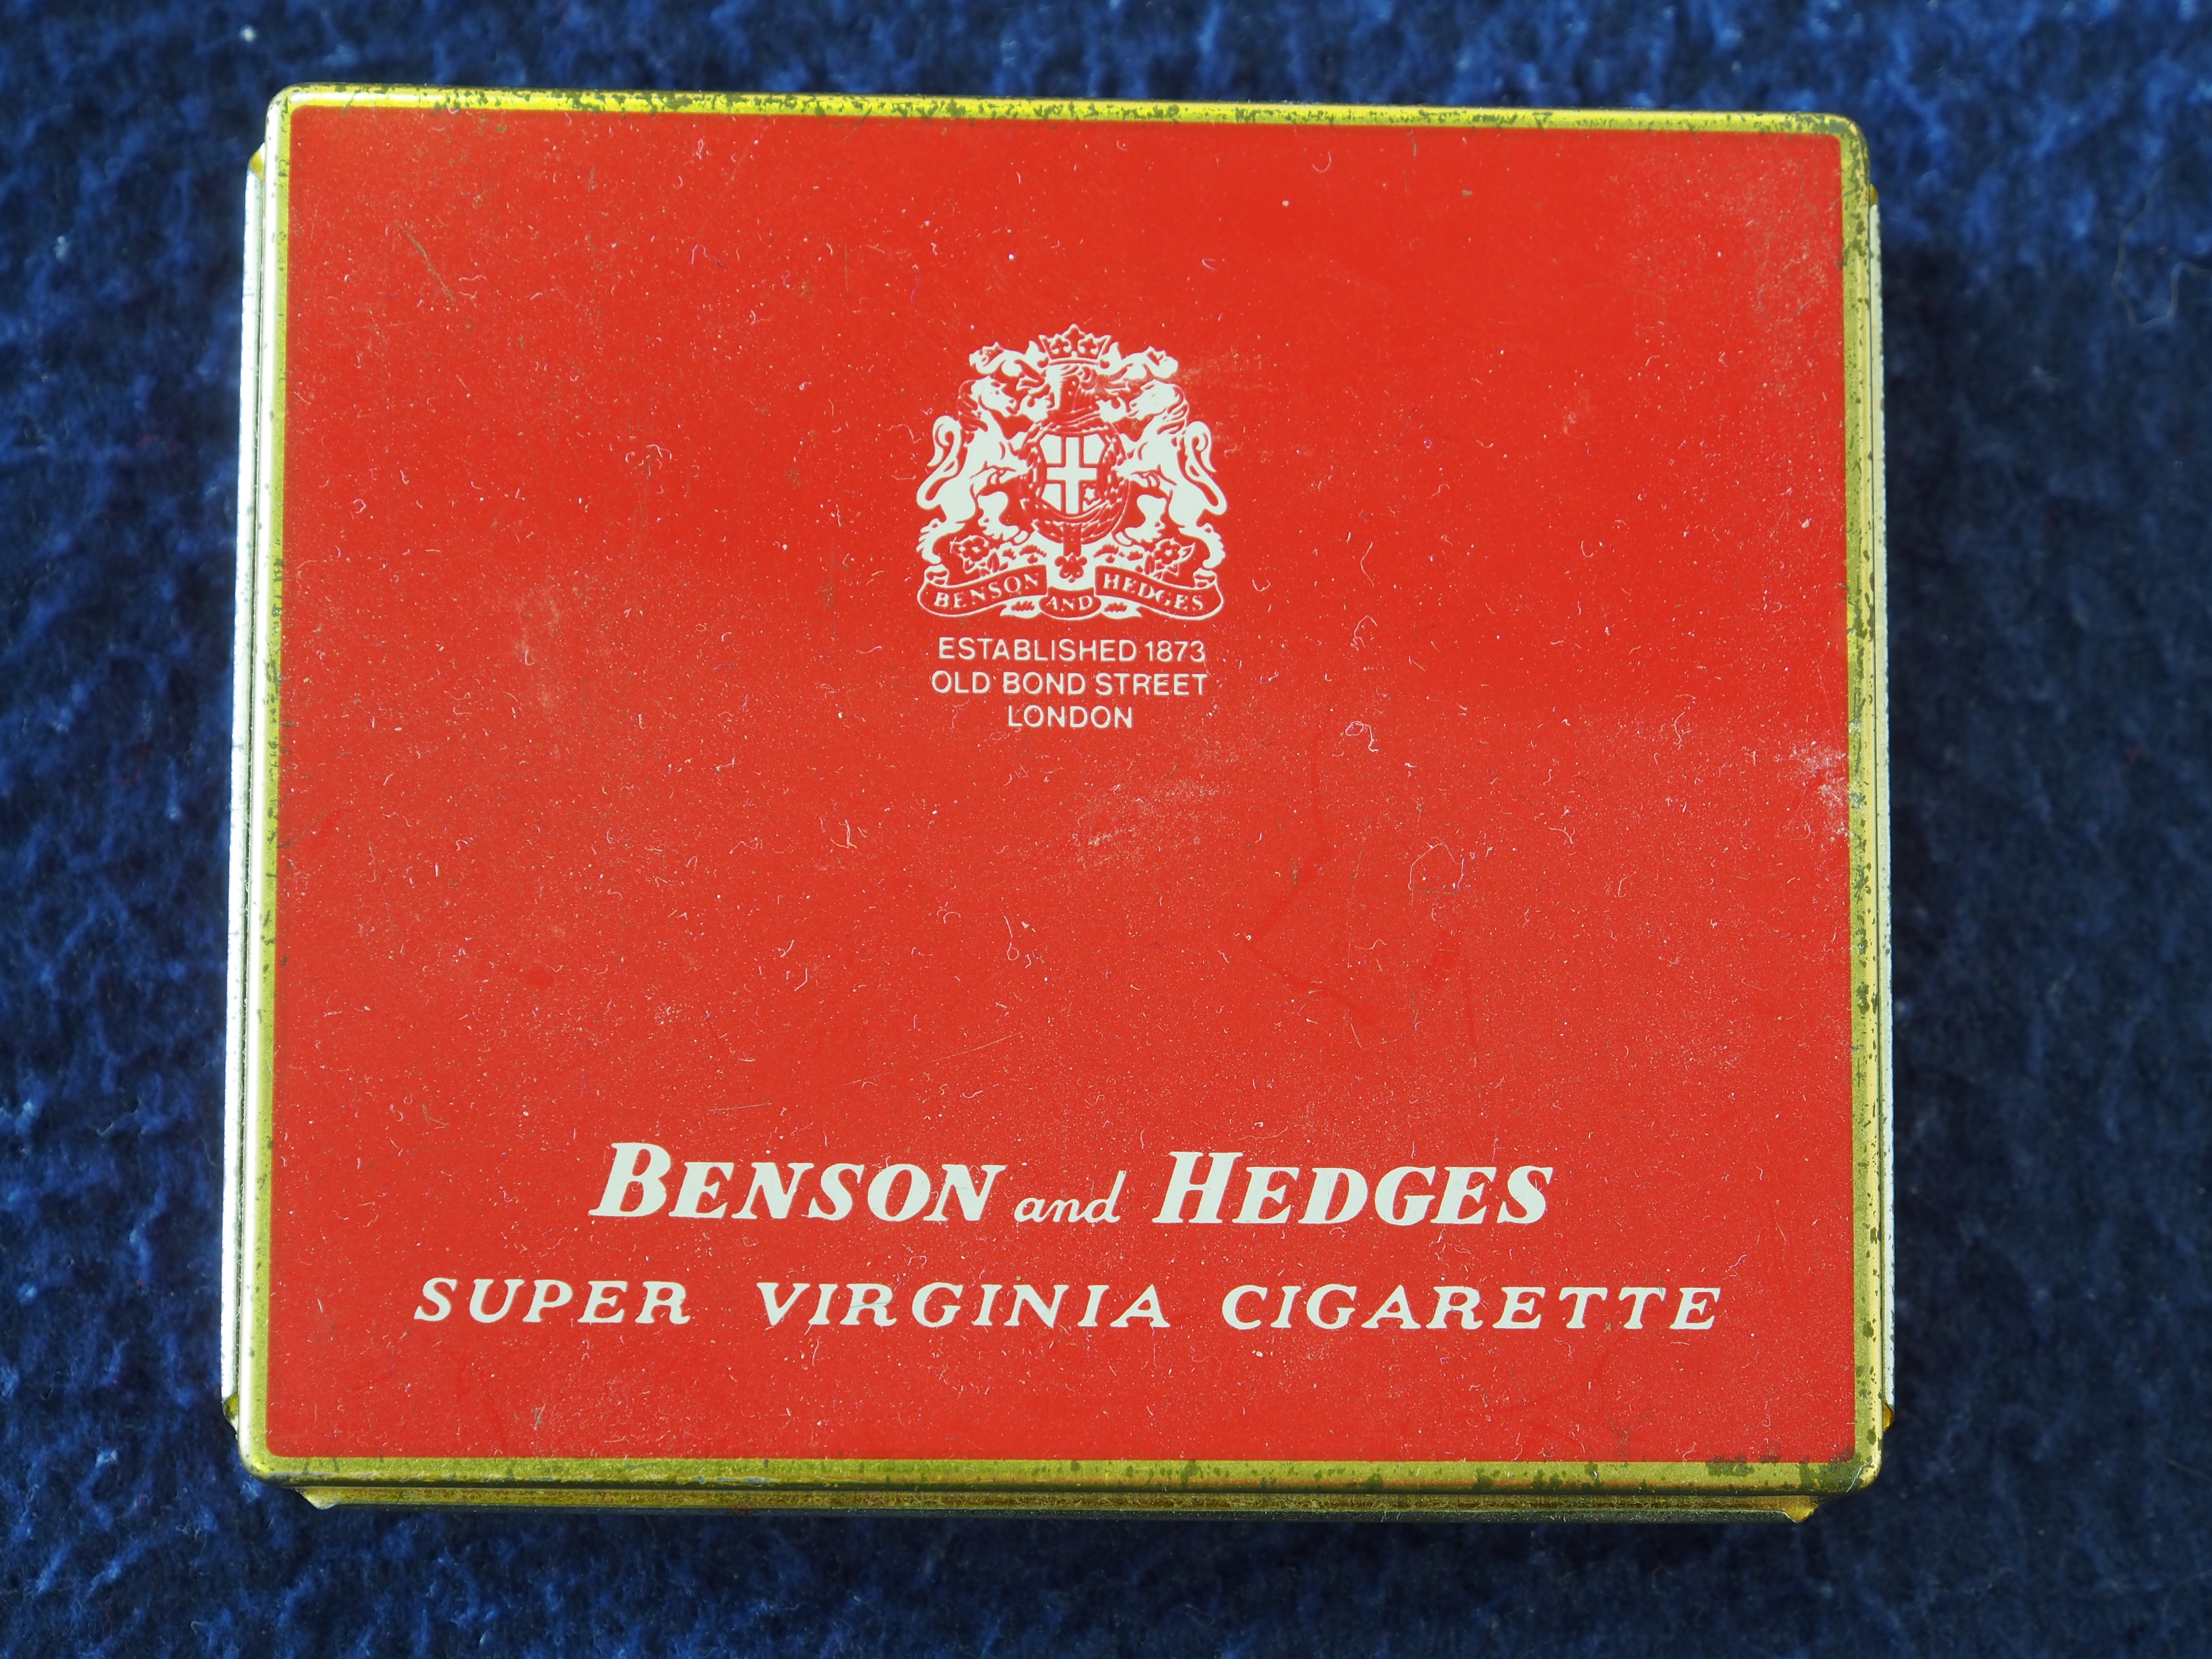 Benson and hedges super virginia cigarettes cigars local store